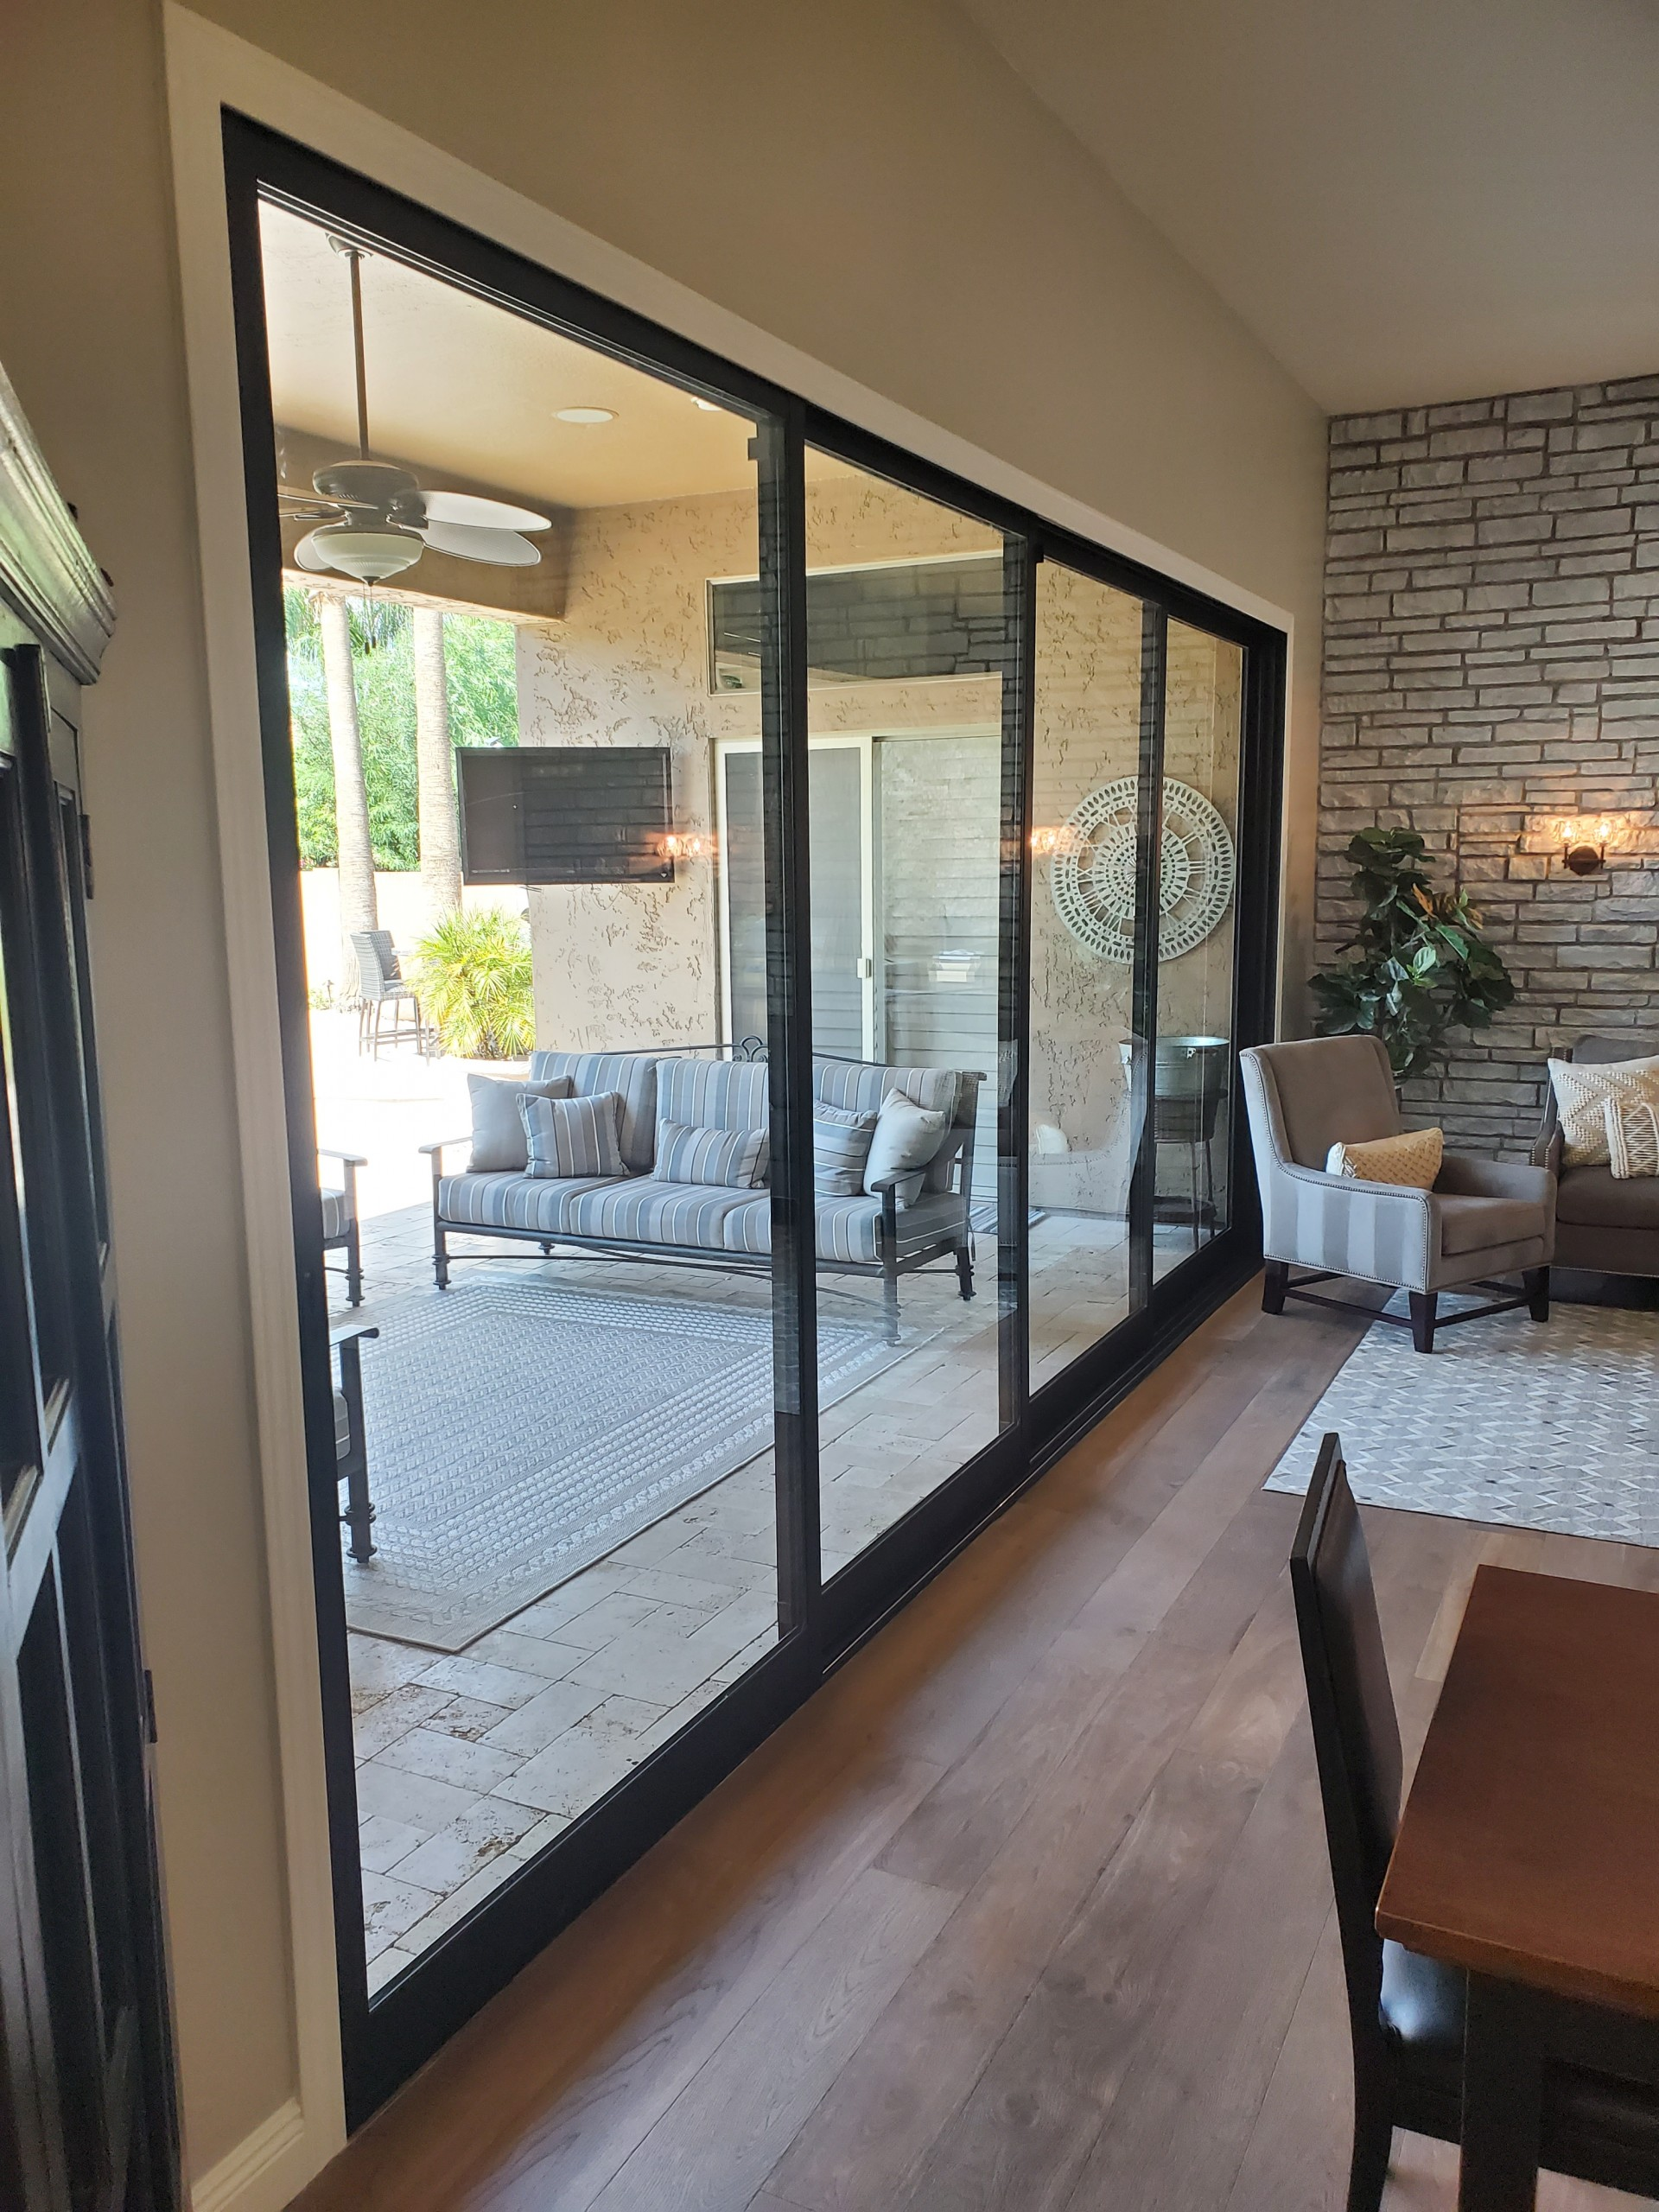 Arizona Window and Door in Scottsdale and Tucson showing multipanel sliding door